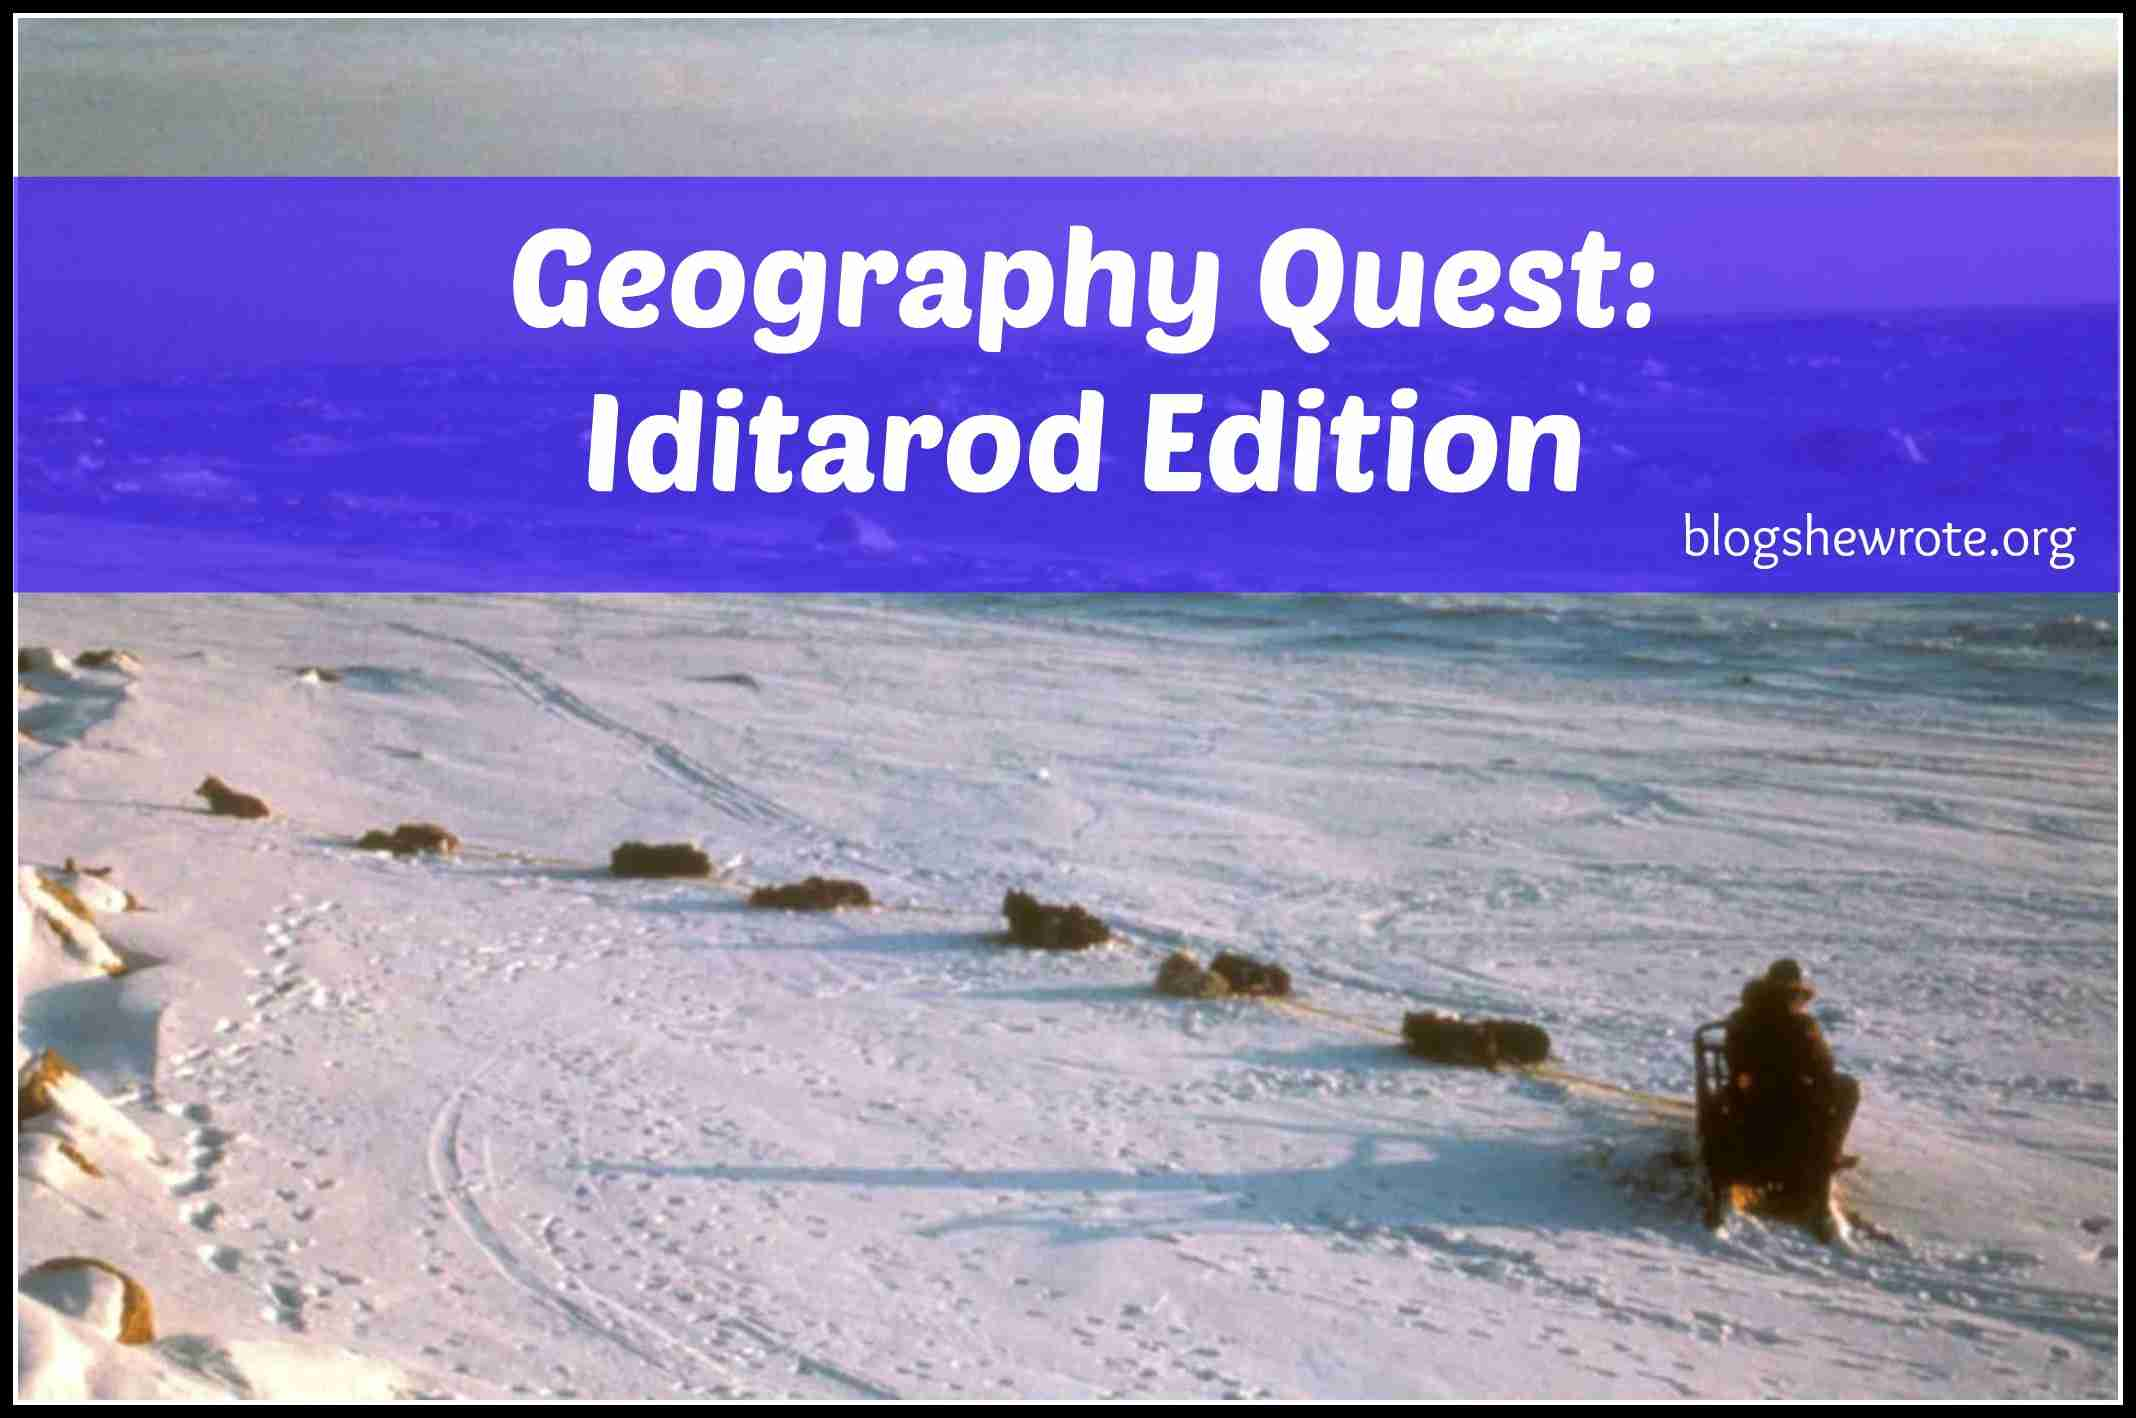 Blog, She Wrote: Geography Quest- Iditarod Edition